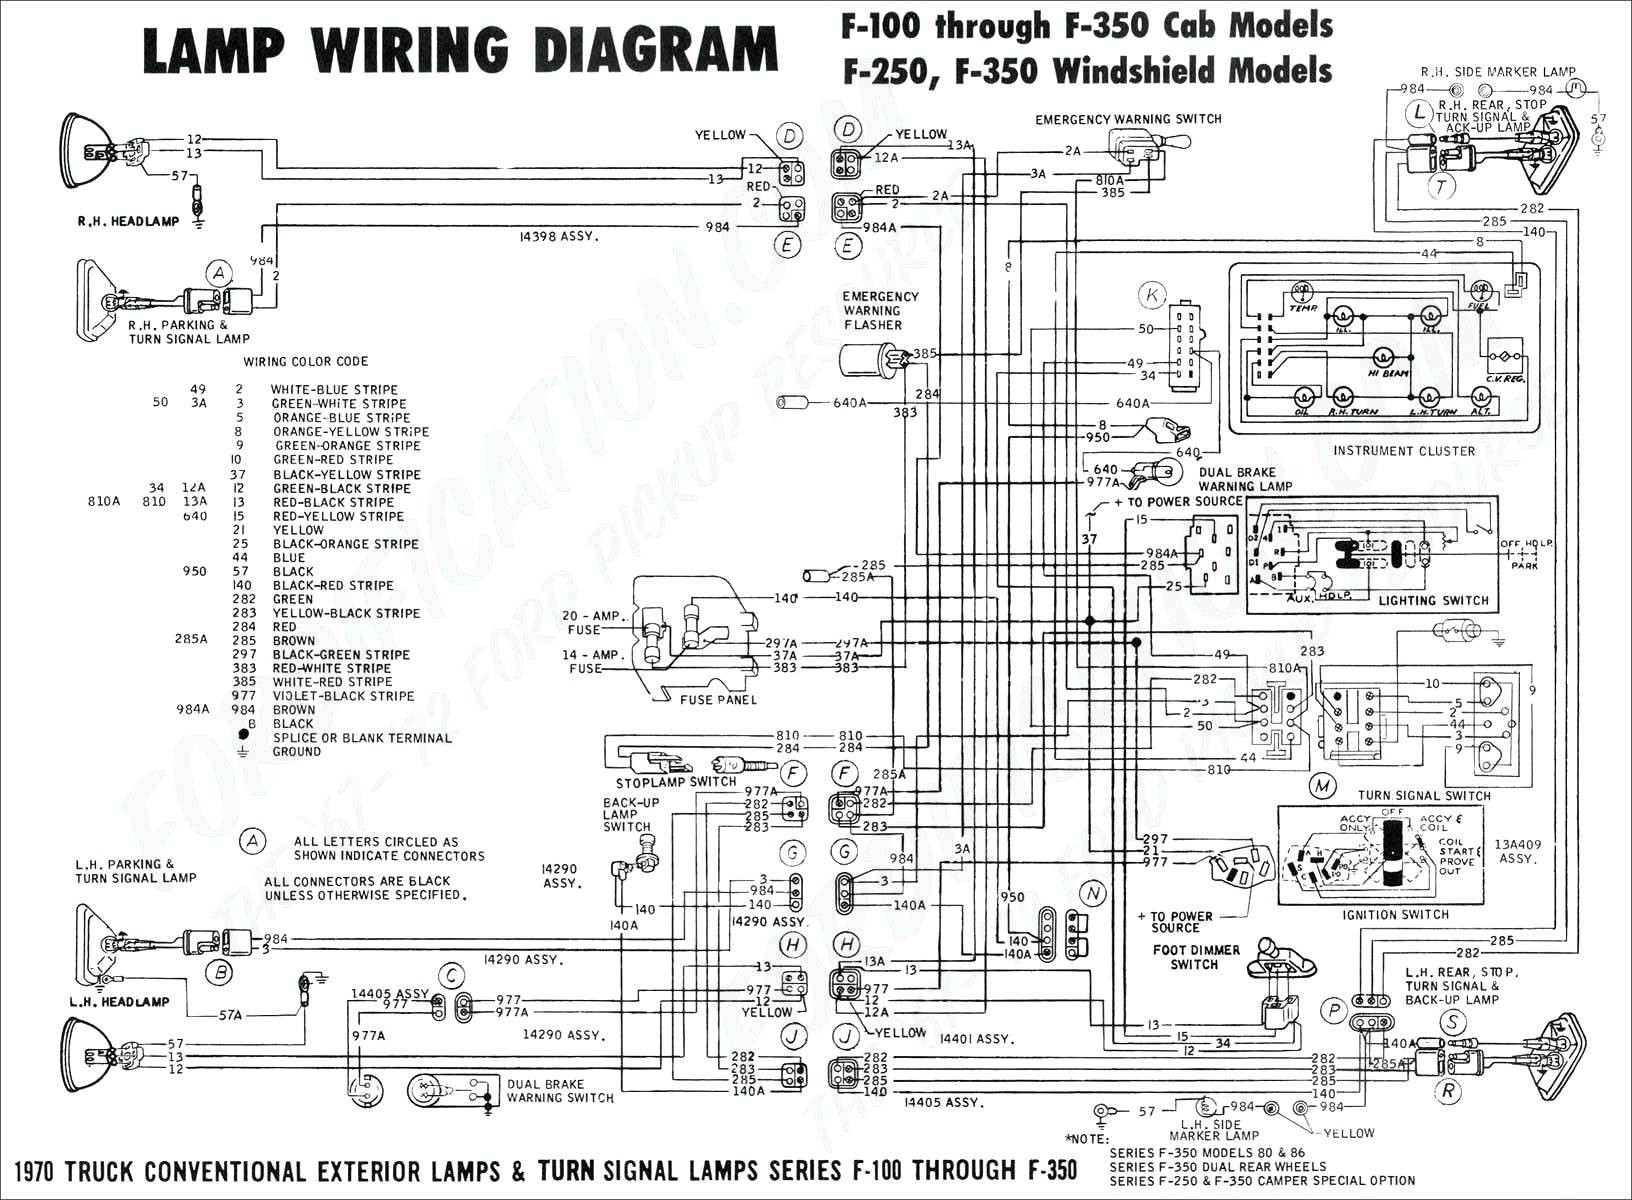 2004 Gmc Yukon Parts Diagram 2004 Gmc Parts Diagram